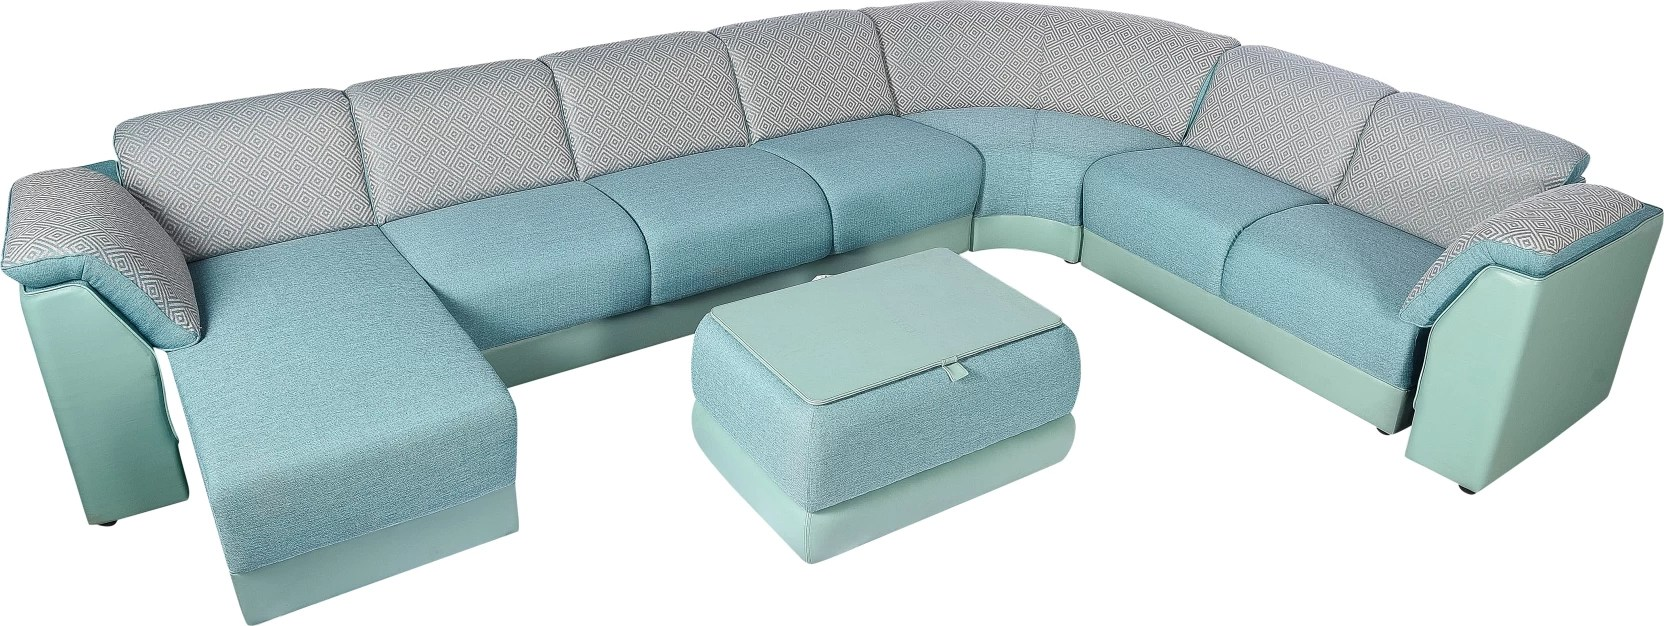 Interio Sofa Modular Godrej Interio Fabric 3 2 1 1 Teal Green Sofa Set Price In